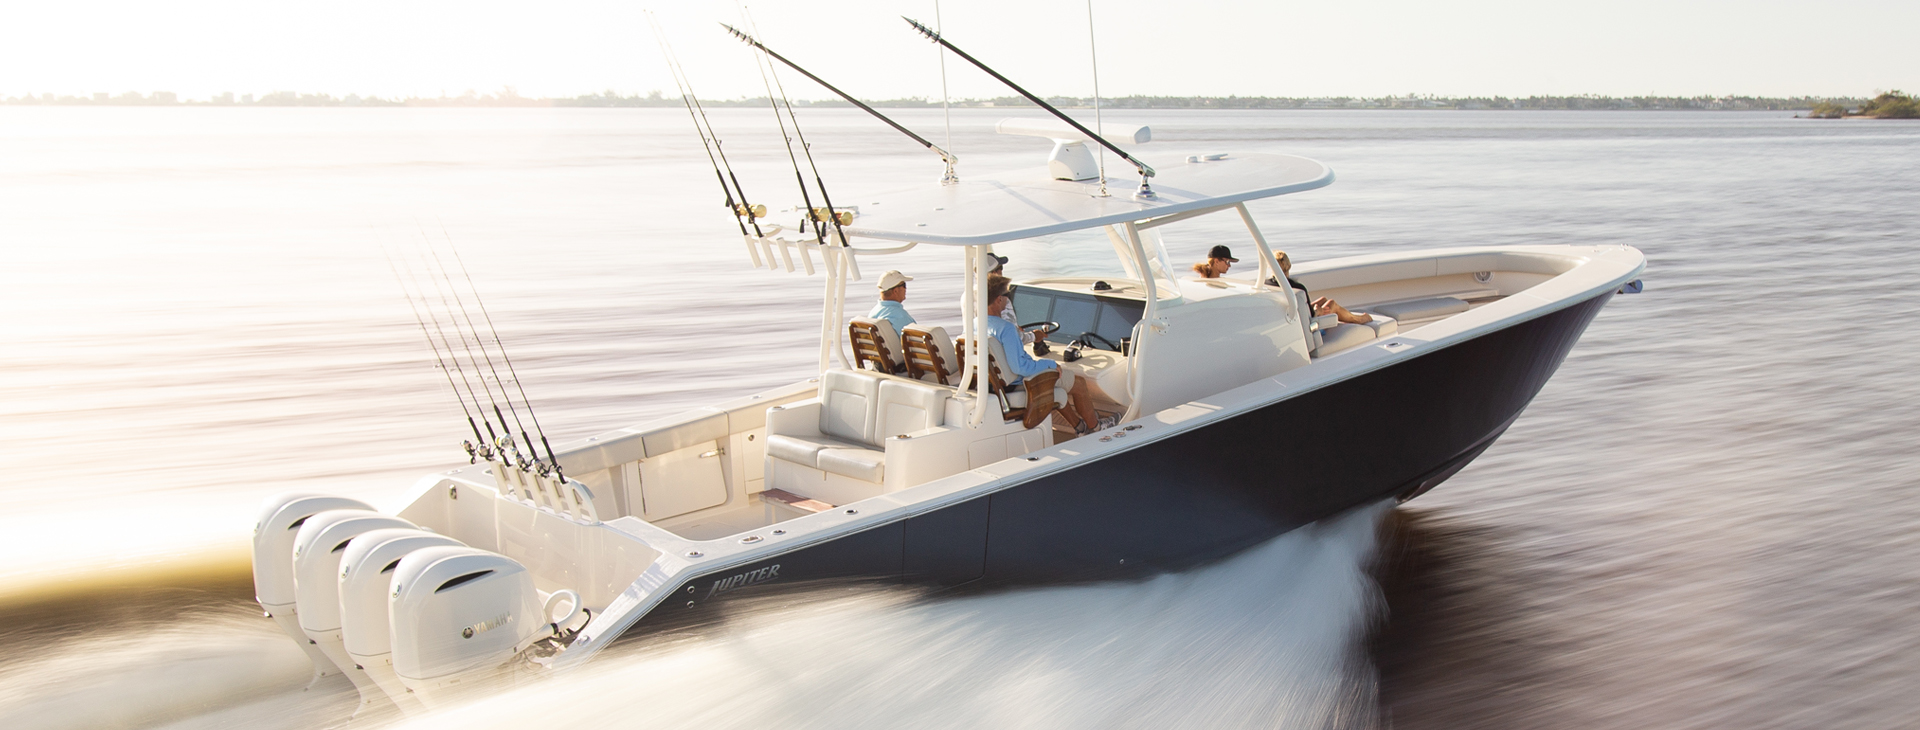 Welcome to Bluewater Yacht Sales - Doing Business Since 1972